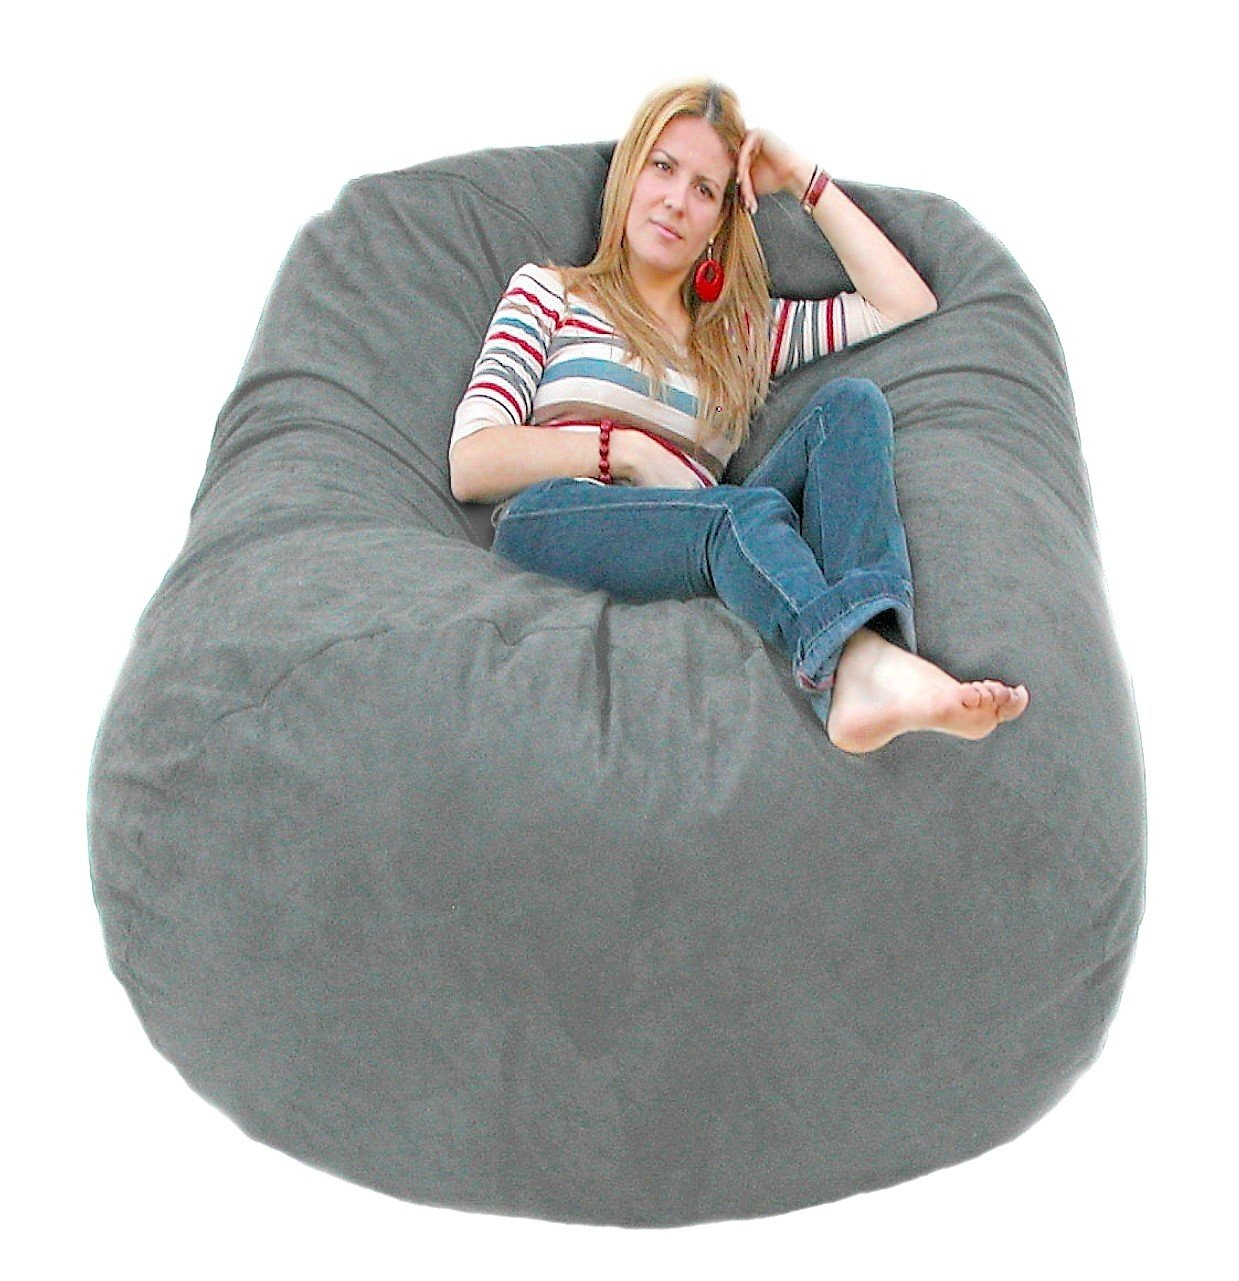 Amazon.com: Cozy Sack 6 Feet Bean Bag Chair, Large, Grey: Kitchen U0026 Dining